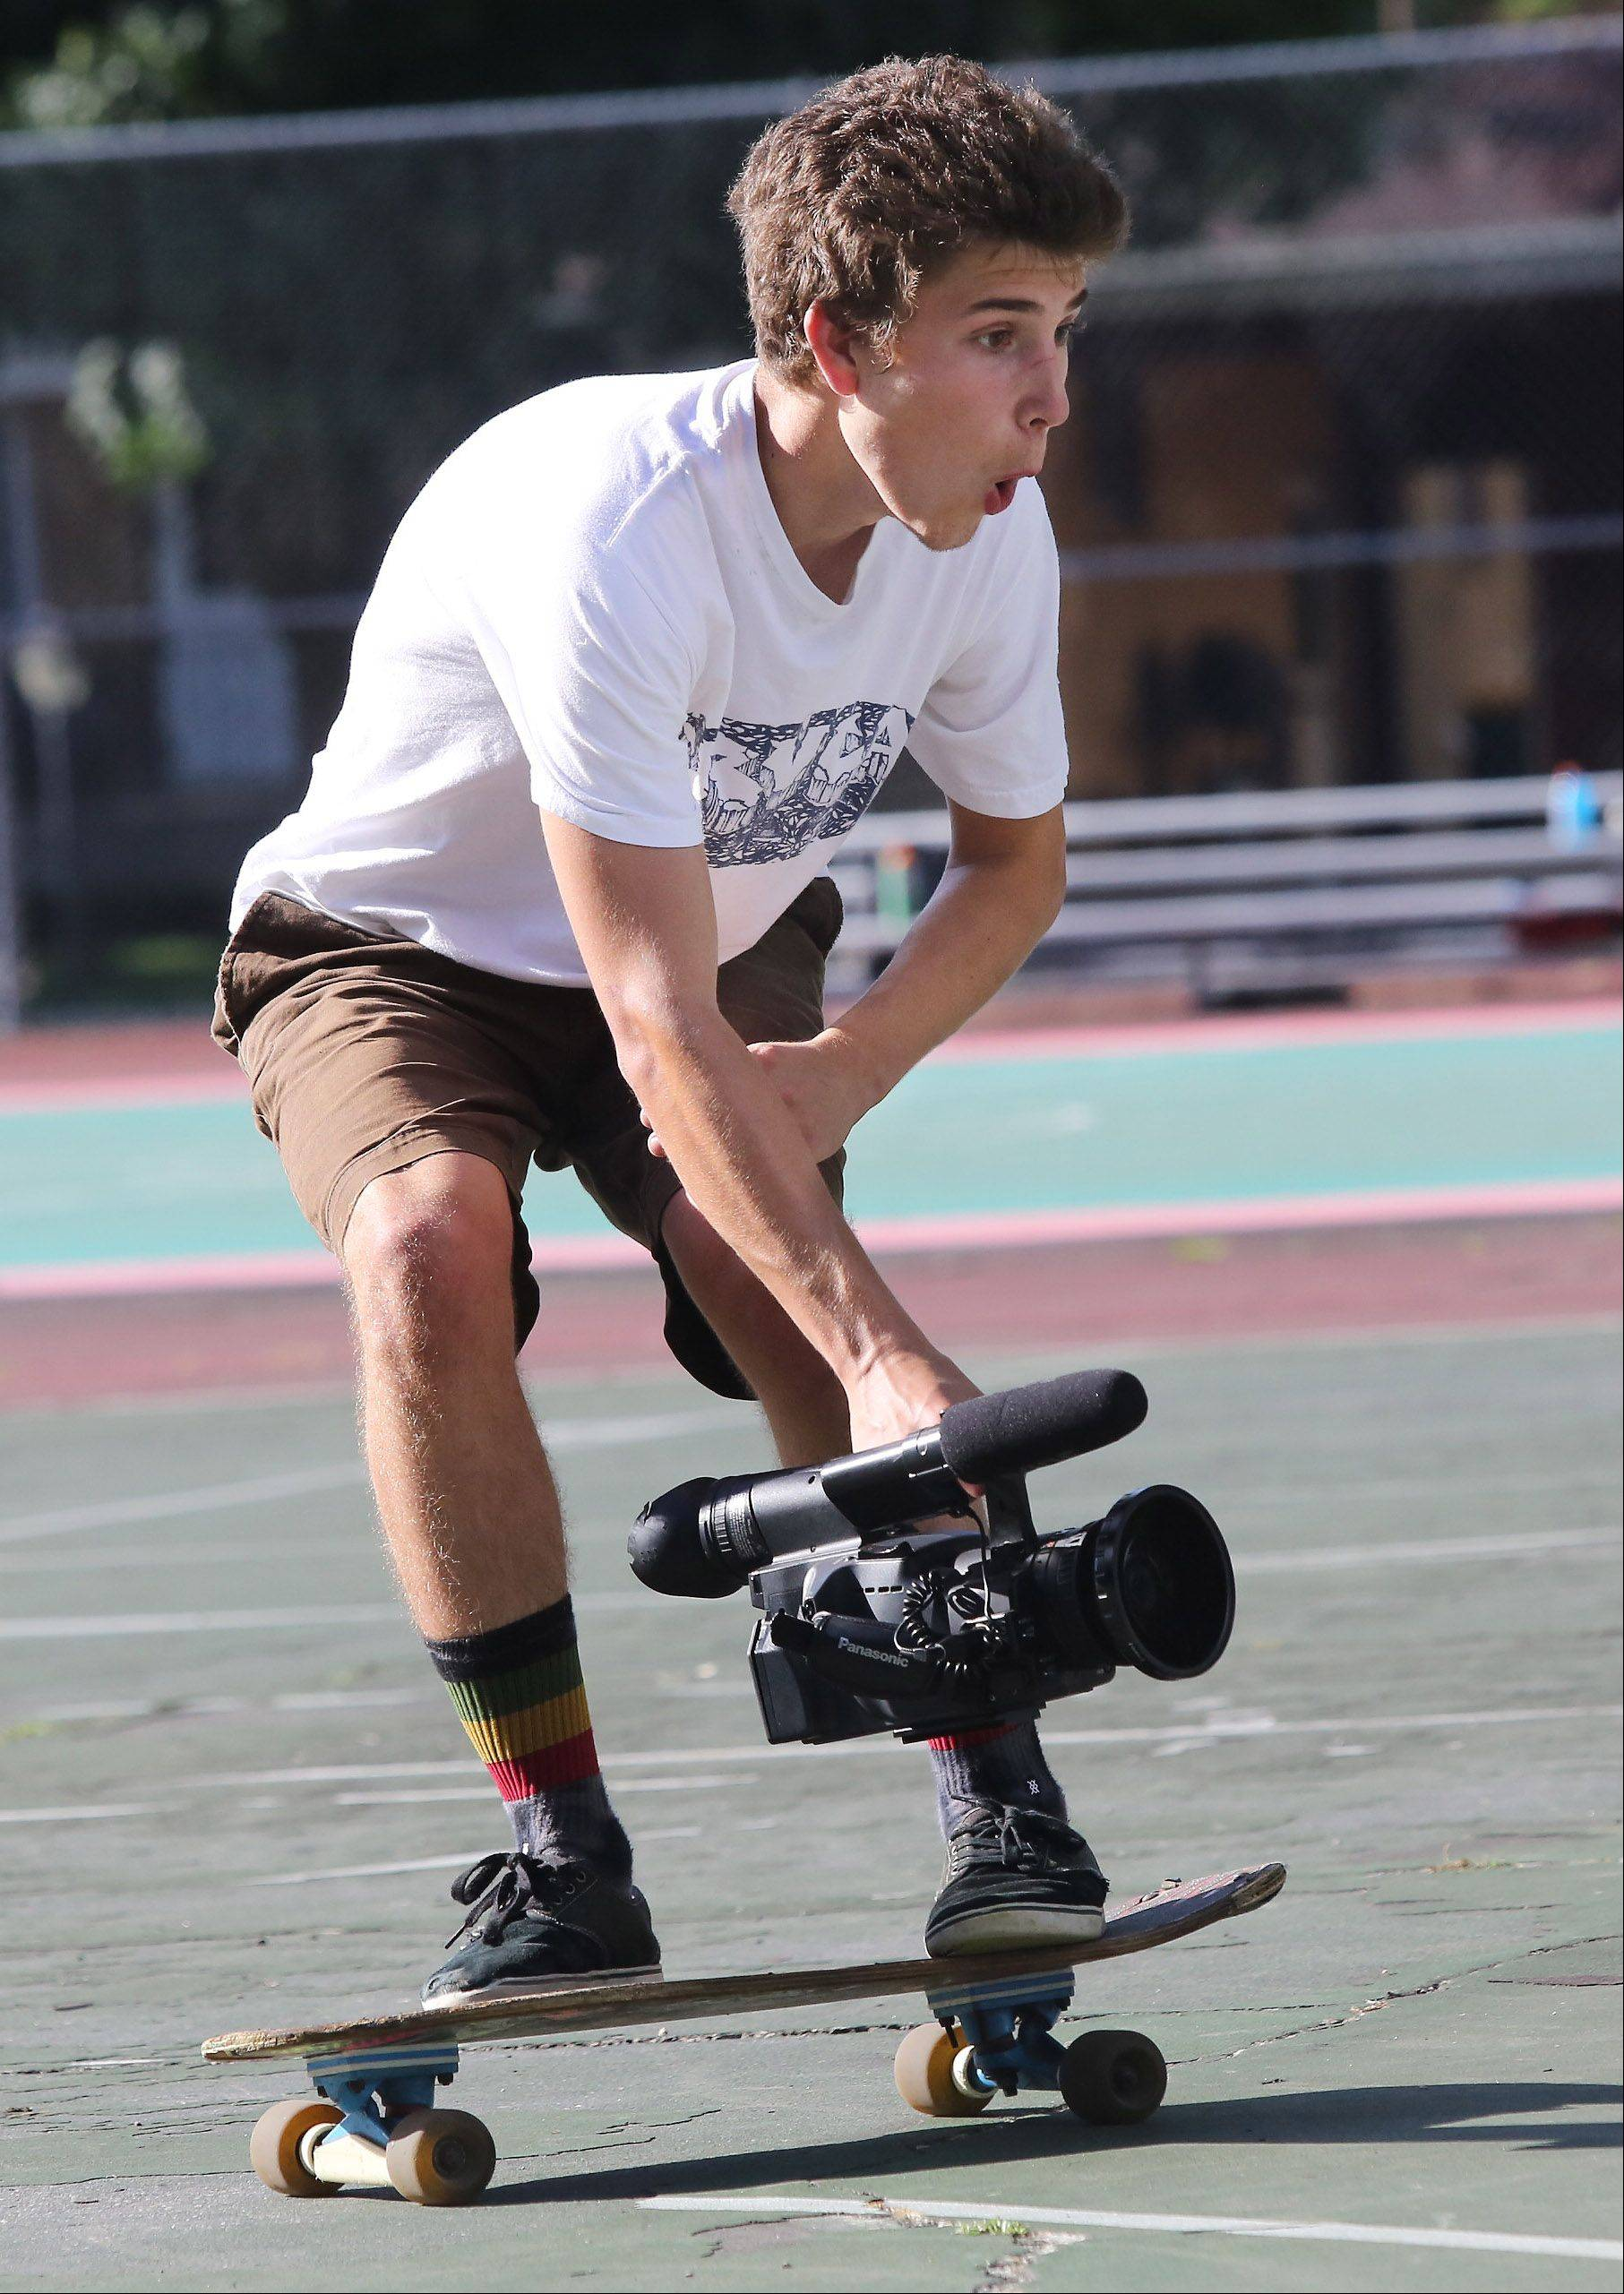 It helps that Kollman knows how to skate himself as he glides along next to another skateboarder for a good shot.